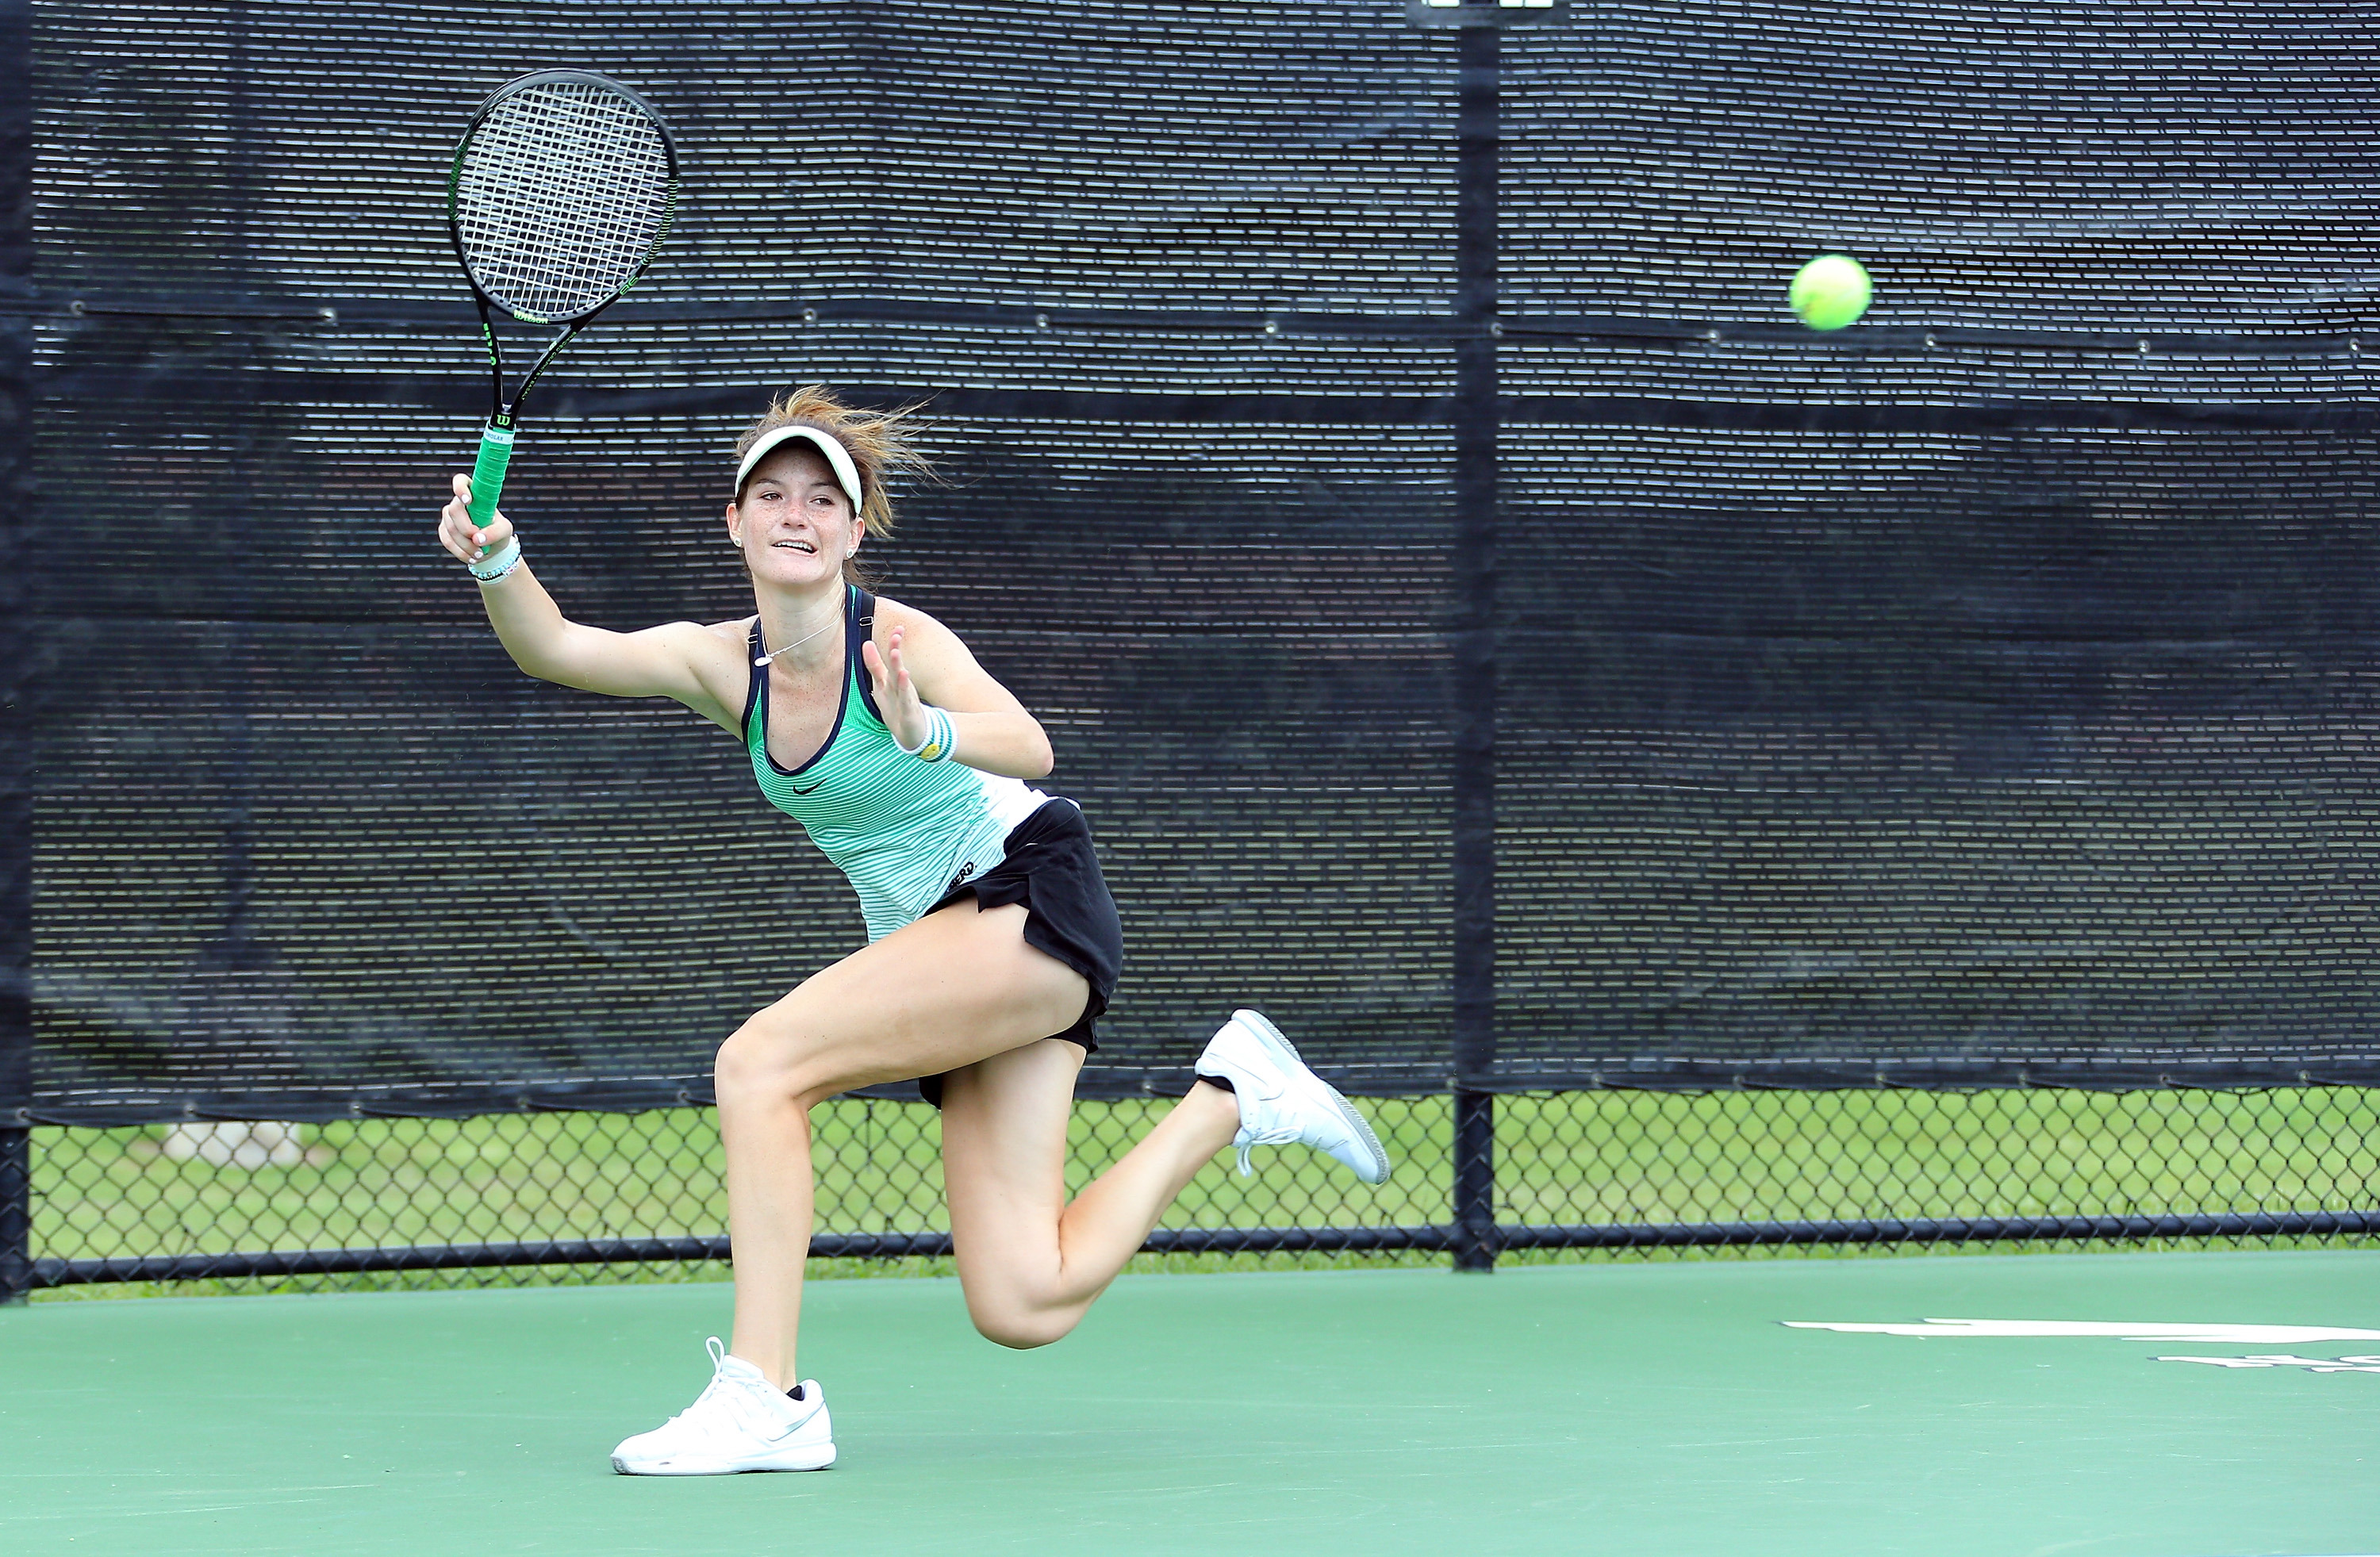 Maddie Silver teamed with Marija Bogicevic to win a doubles match.